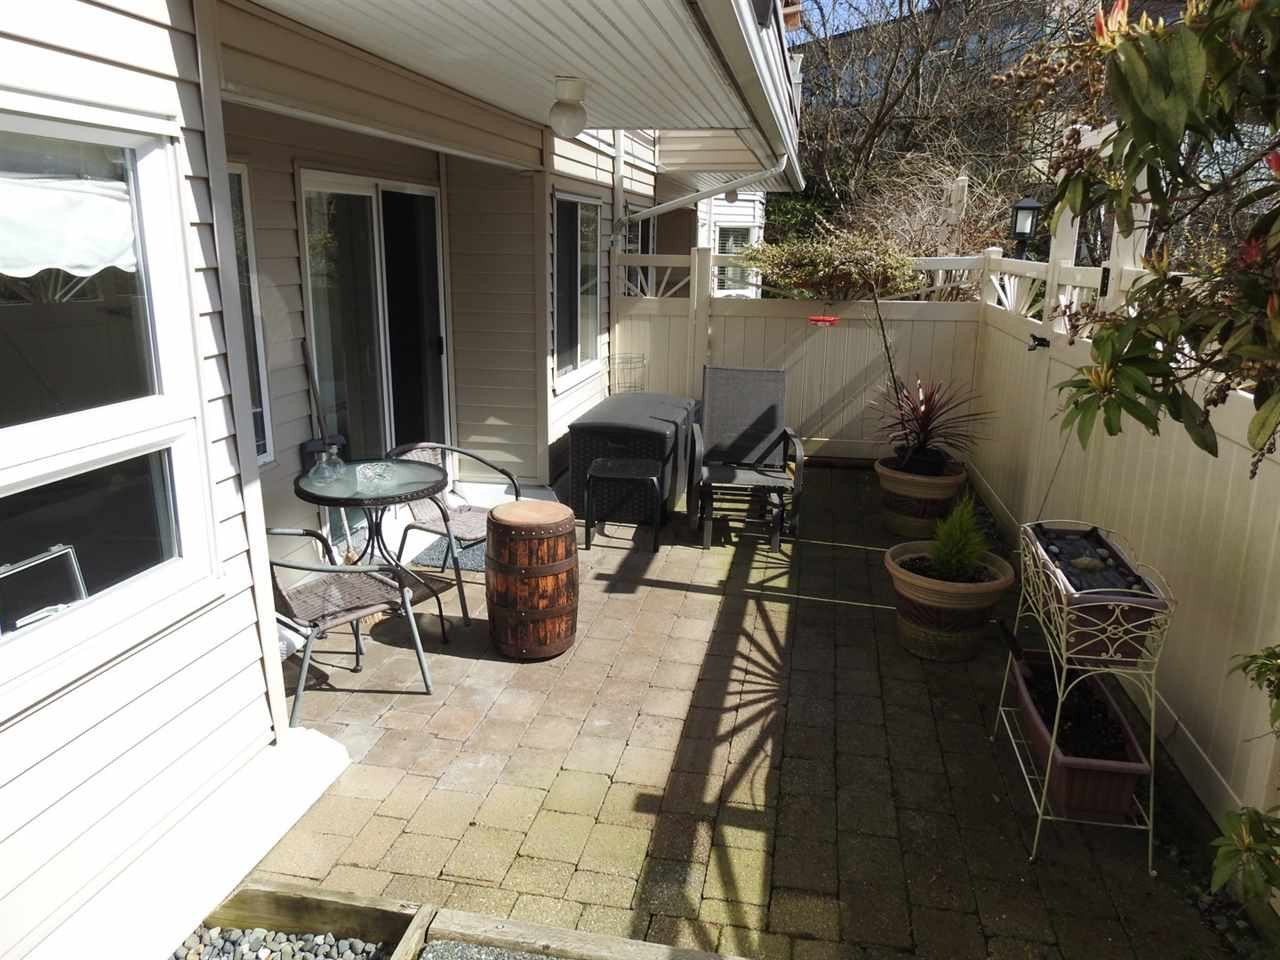 110 1155 ROSS ROAD - Lynn Valley Apartment/Condo for sale, 2 Bedrooms (R2560572) - #13